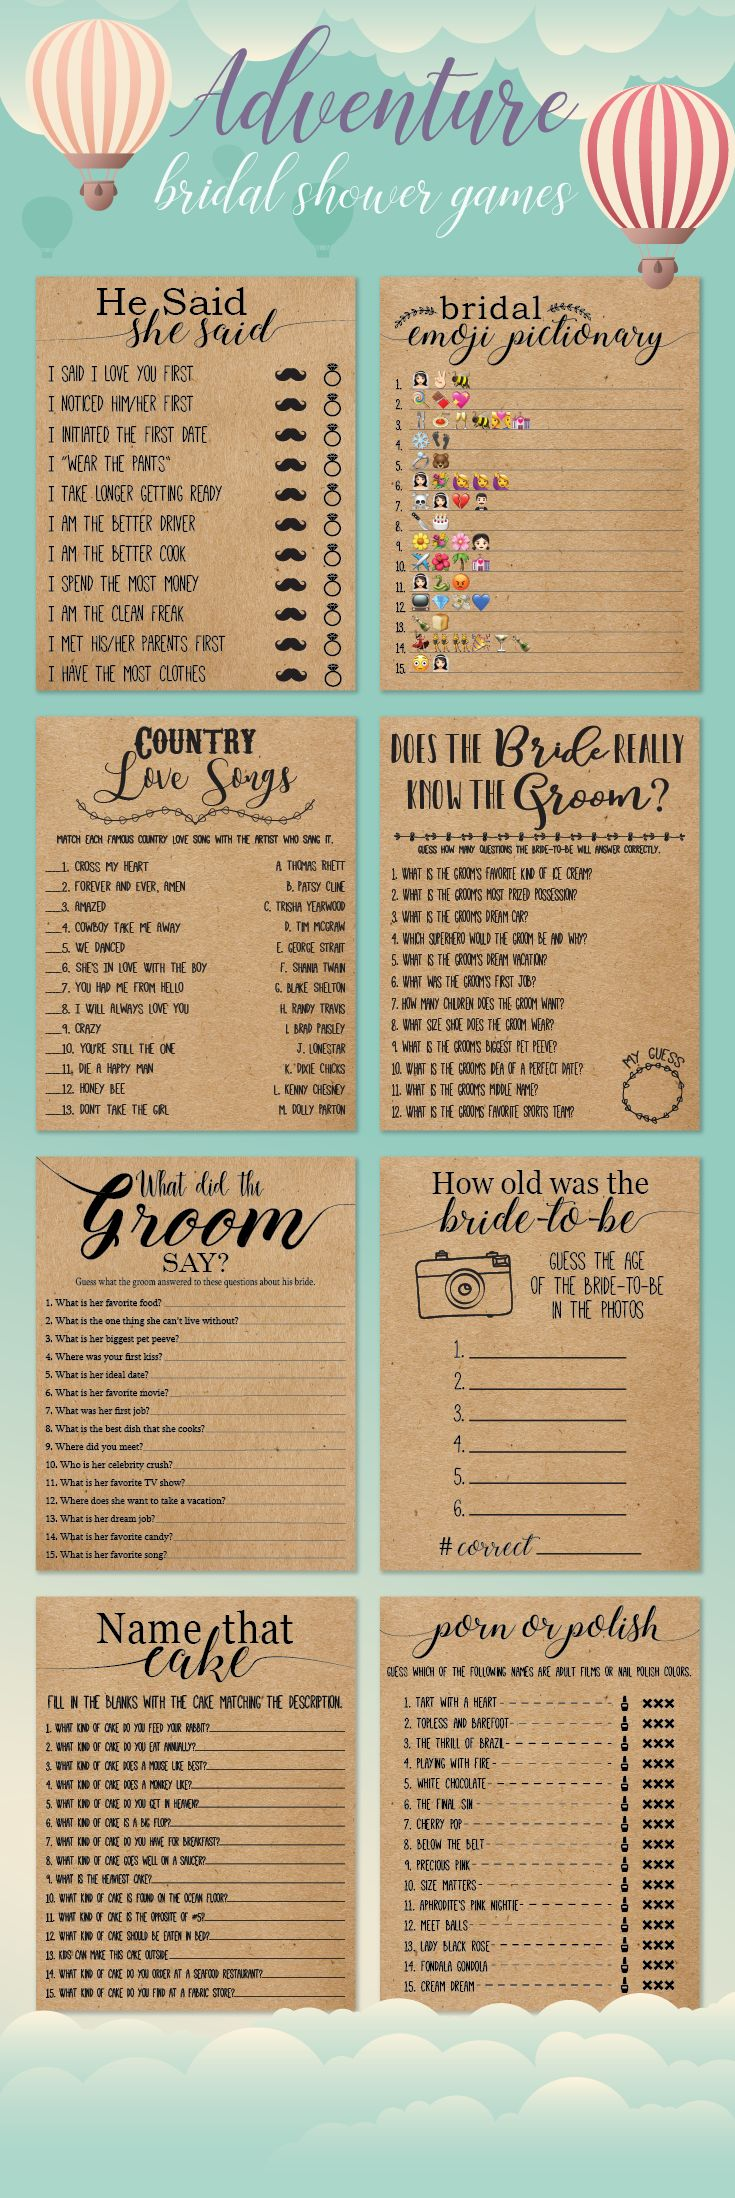 Bridal shower games that will go well